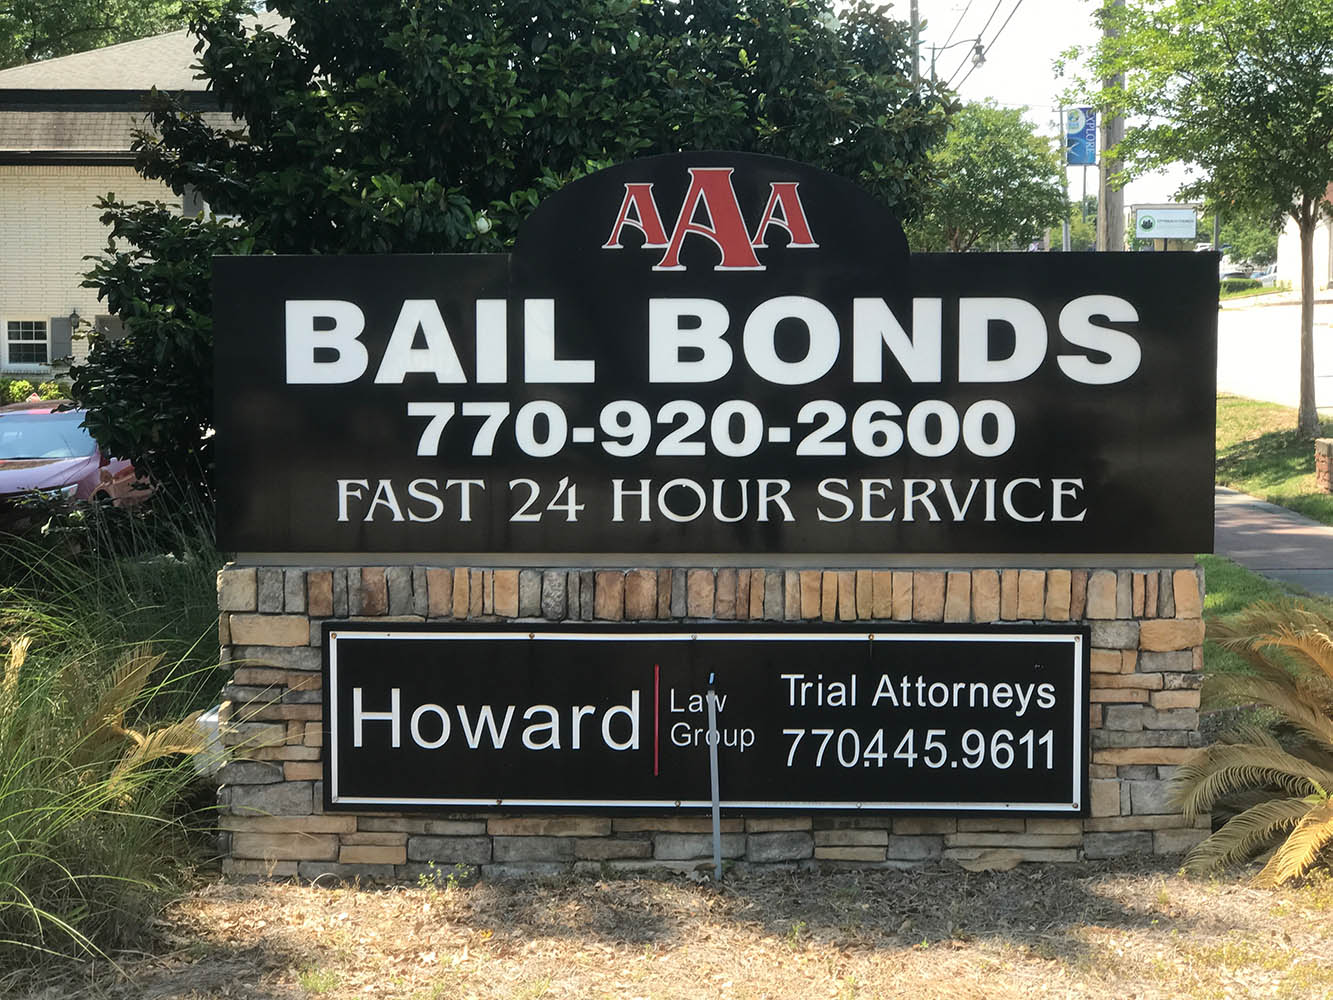 AAA Bail Bonds Street Sign